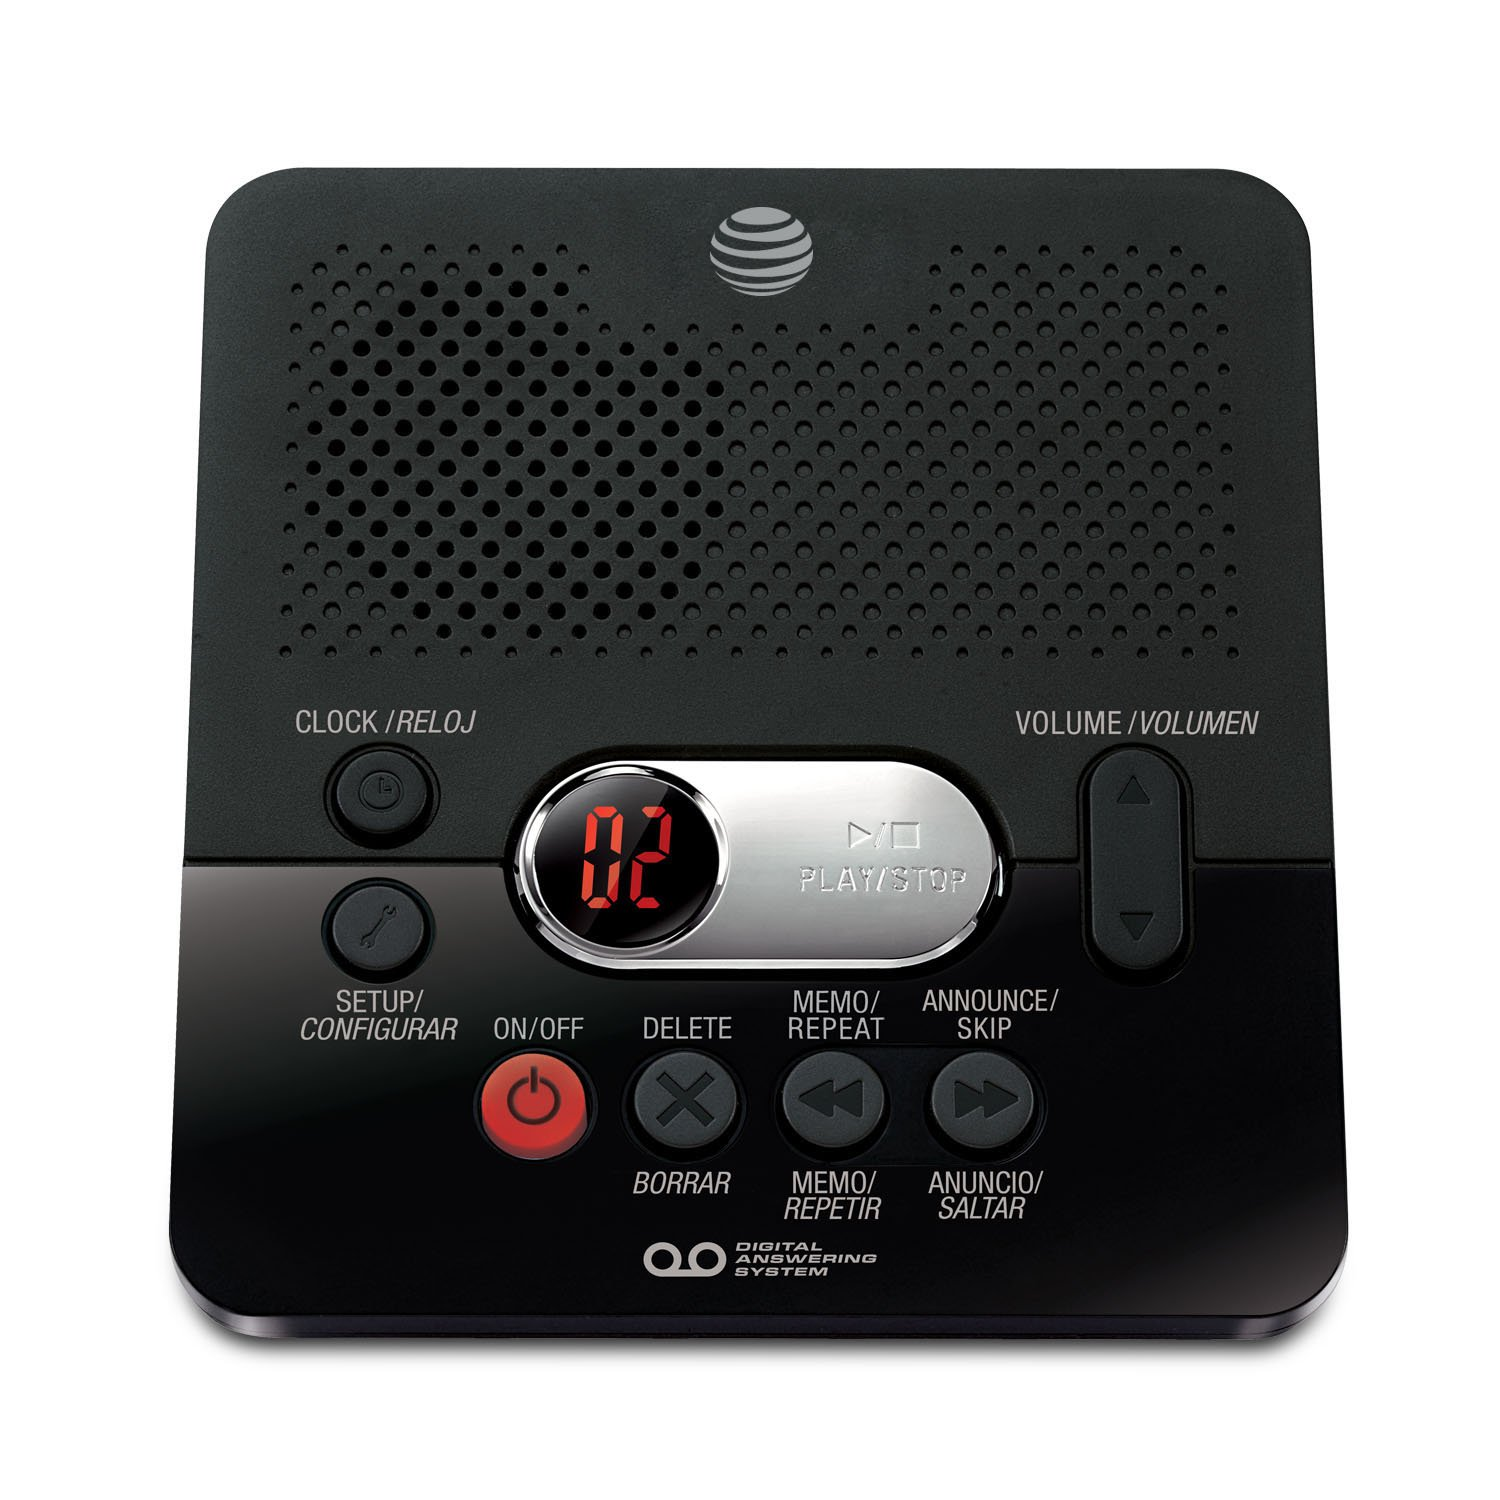 Att Digital Answering Machine With 60 Minutes Record Time And Time